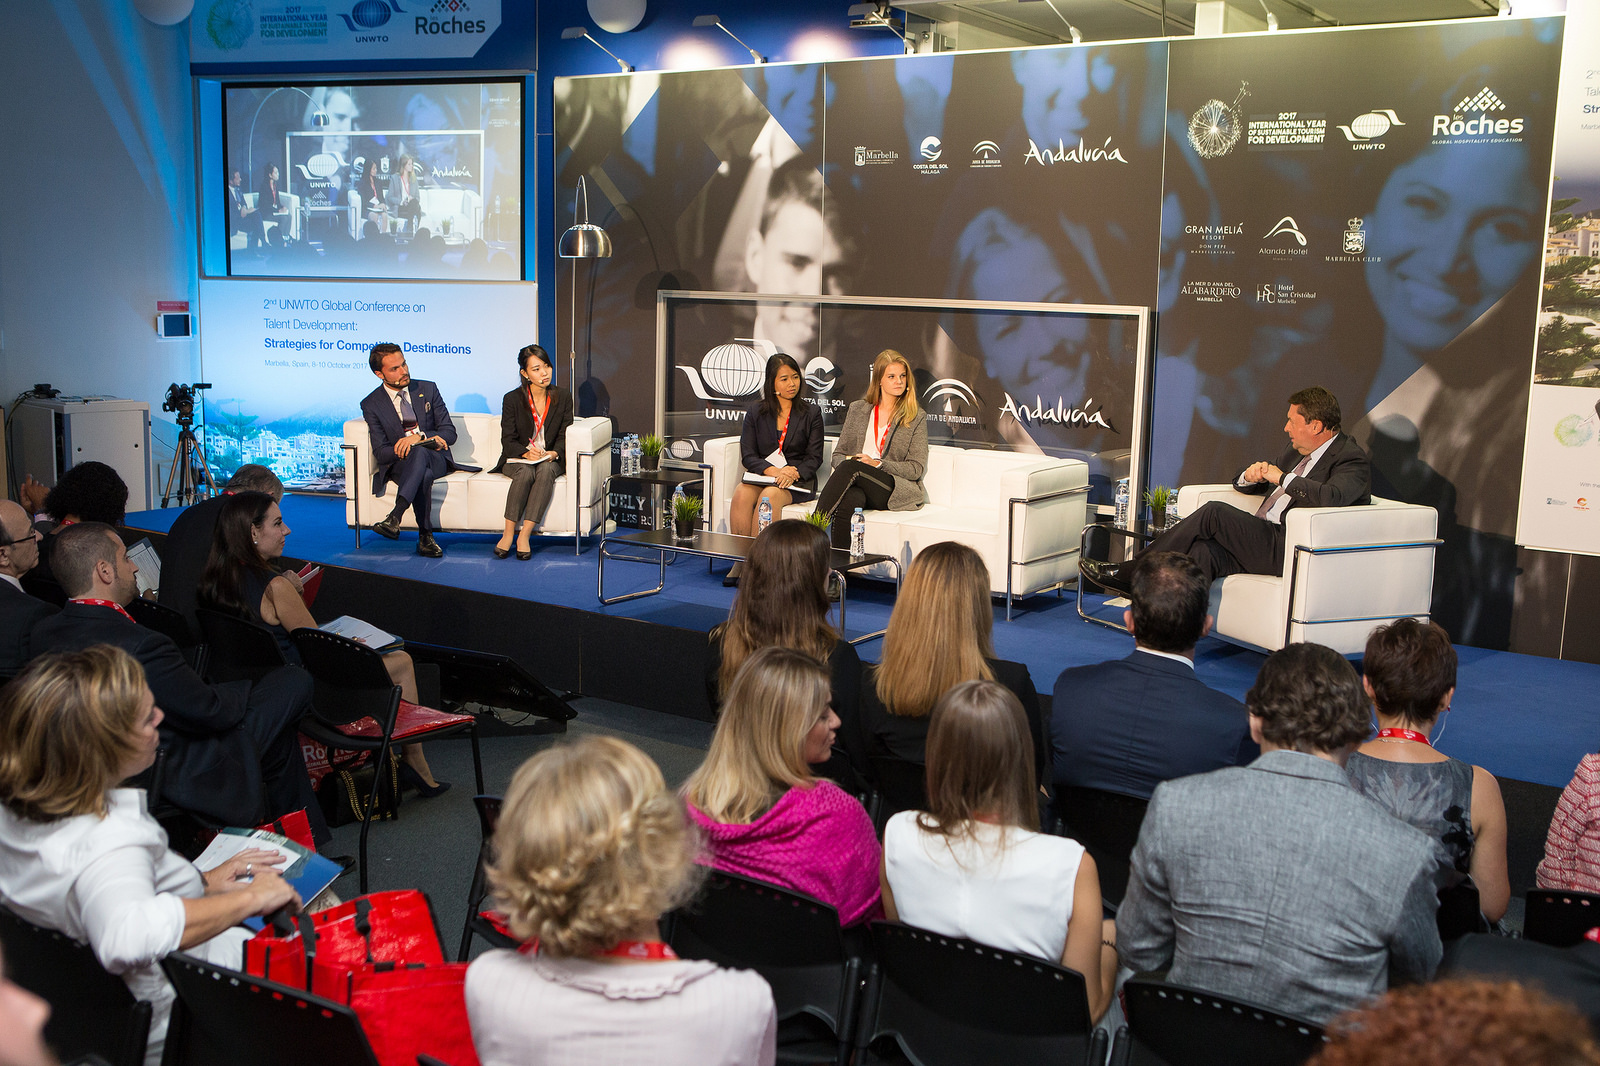 les-roches-marbella-unwto-conference-talent.jpg